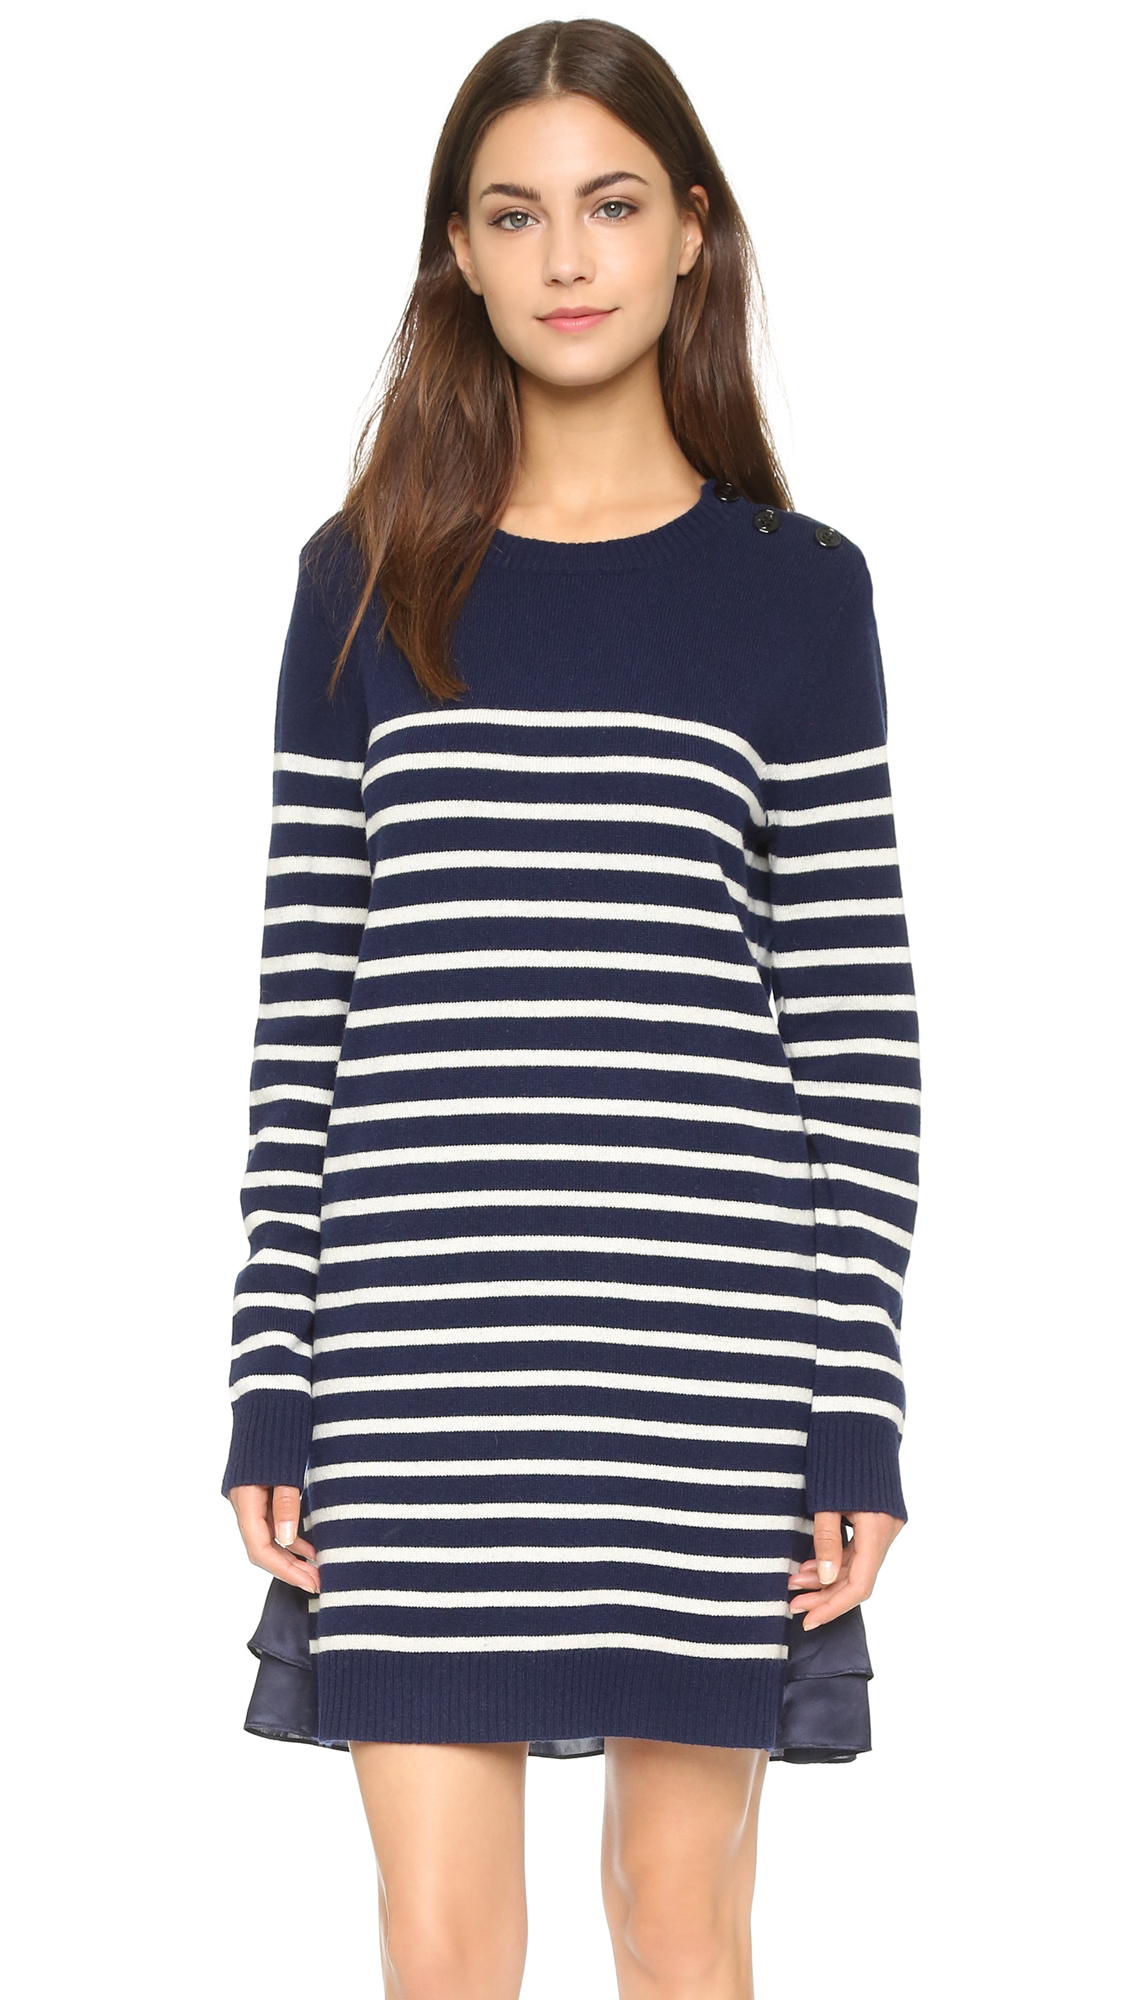 Shop affordable, unique sweater dress navy blue designed by top fashion designers worldwide. Discover more latest collections of at truexfilepv.cf